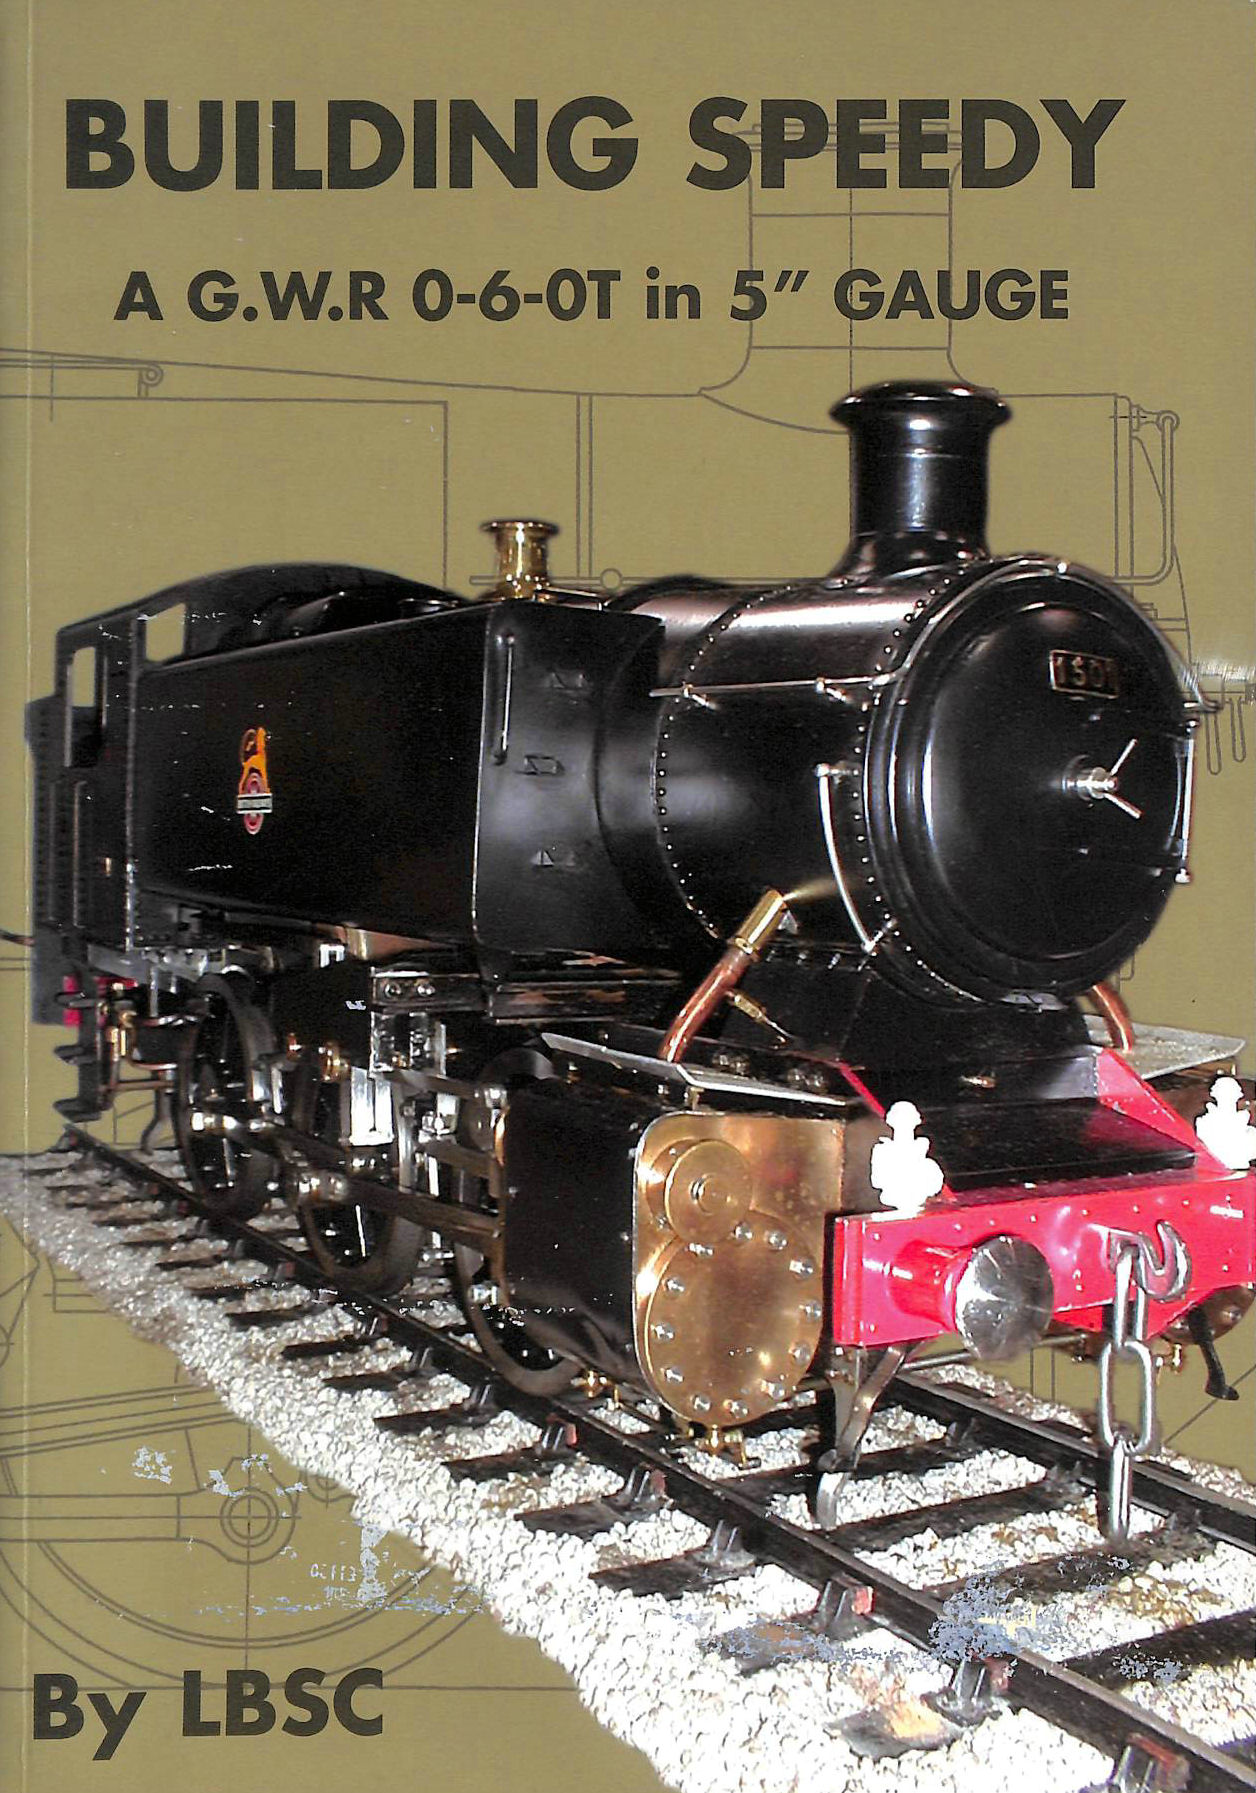 Image for Building Speedy AGWR 0-6-OT in 5 inch Gauge